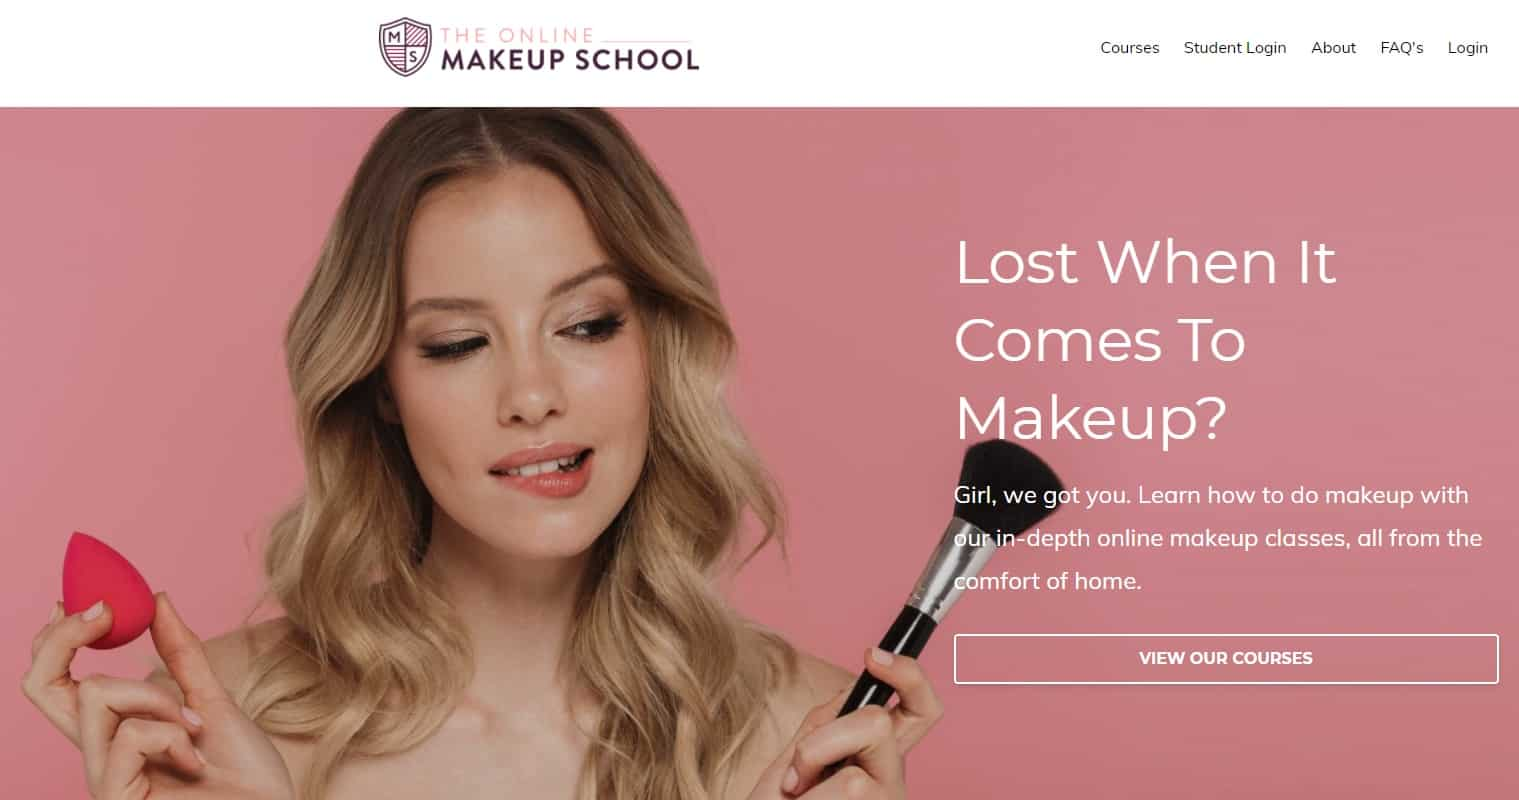 The Online Makeup School Makeup and Beauty Lessons for Beginners